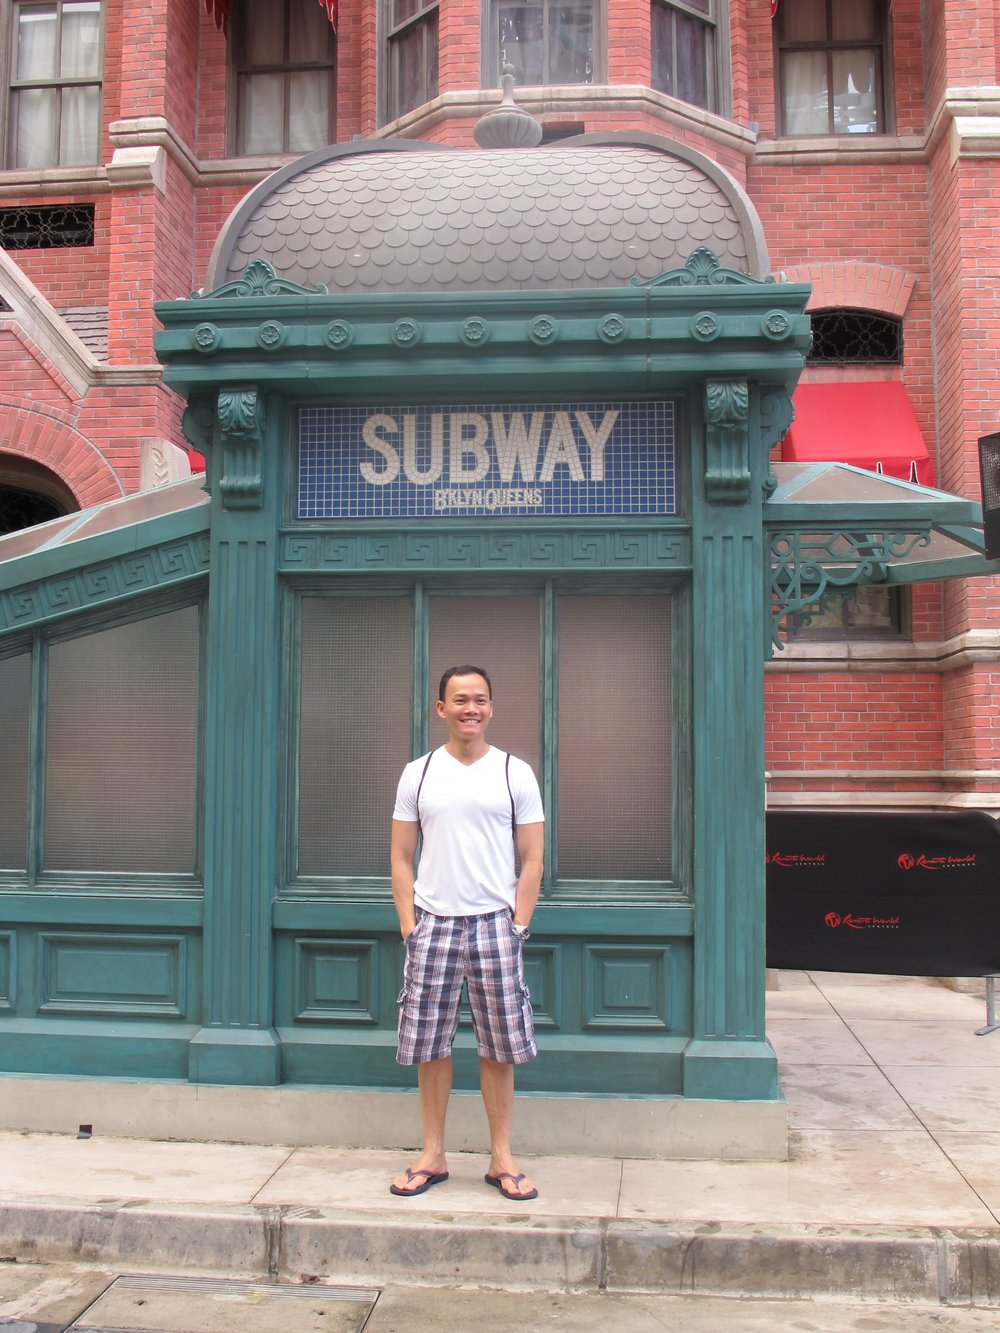 Richard fake Subway October 2010.JPG